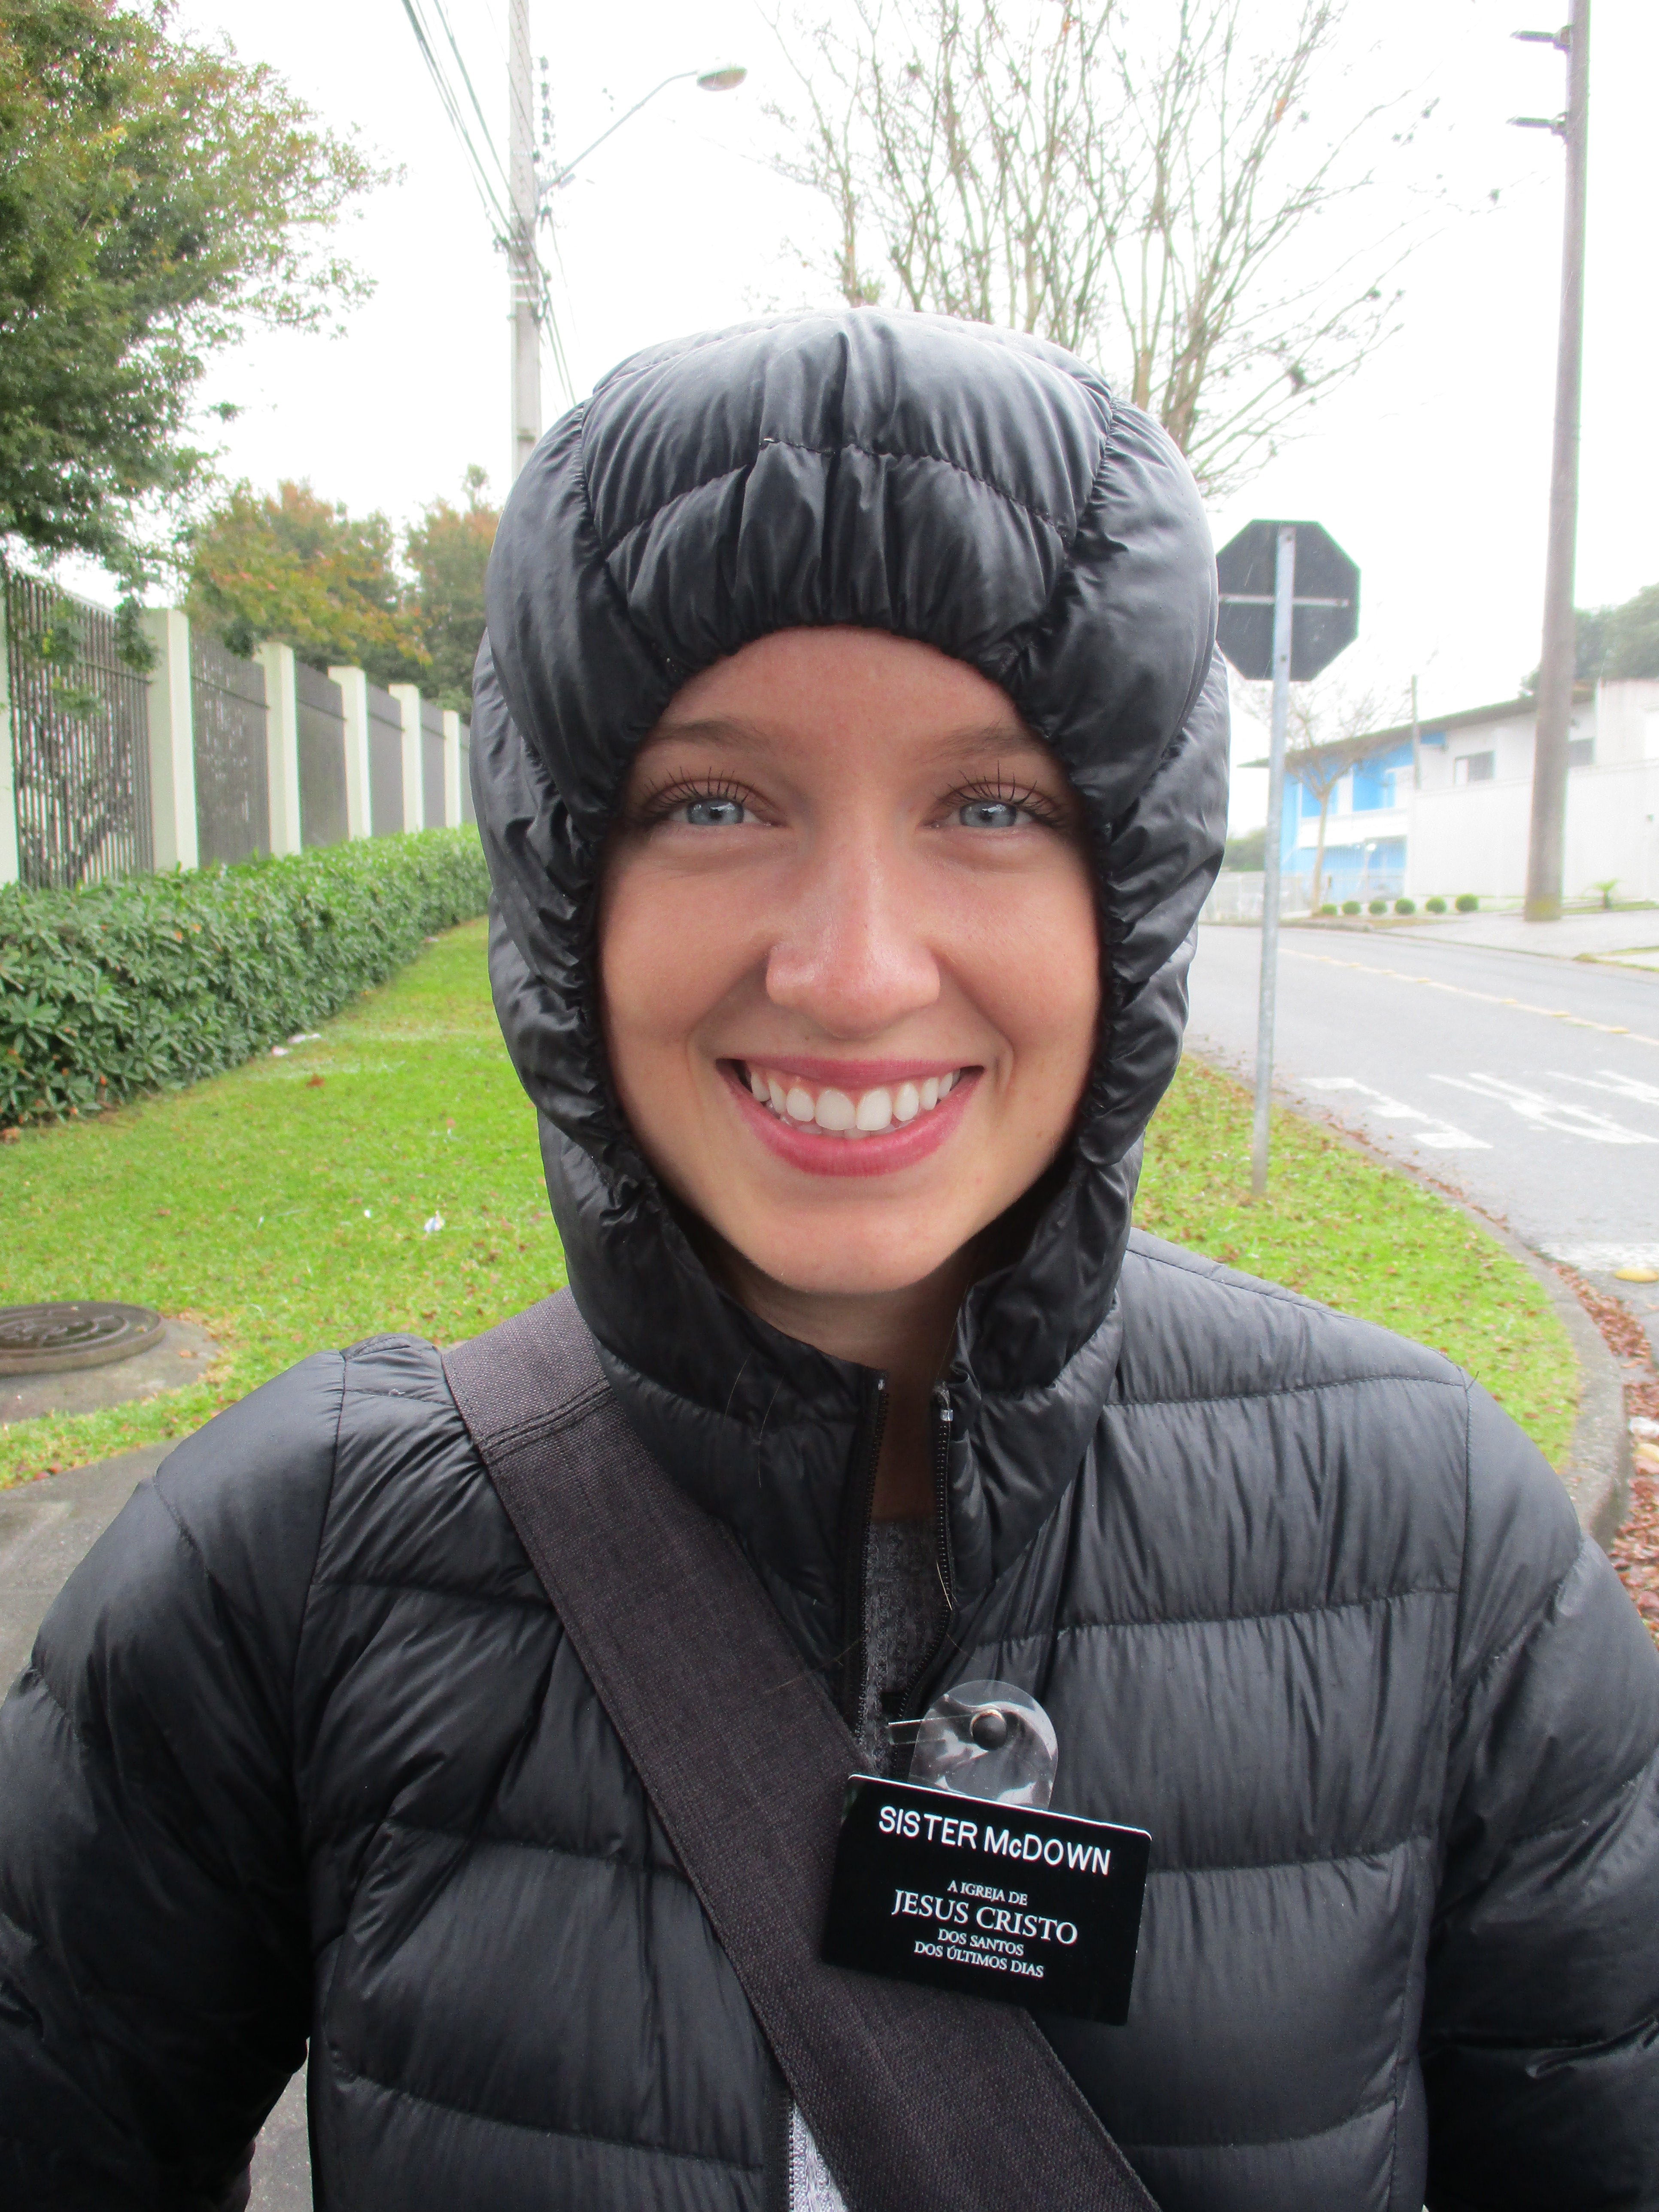 Monique McDown while serving her mission on a cold, rainy day in Curitiba, Brazil.